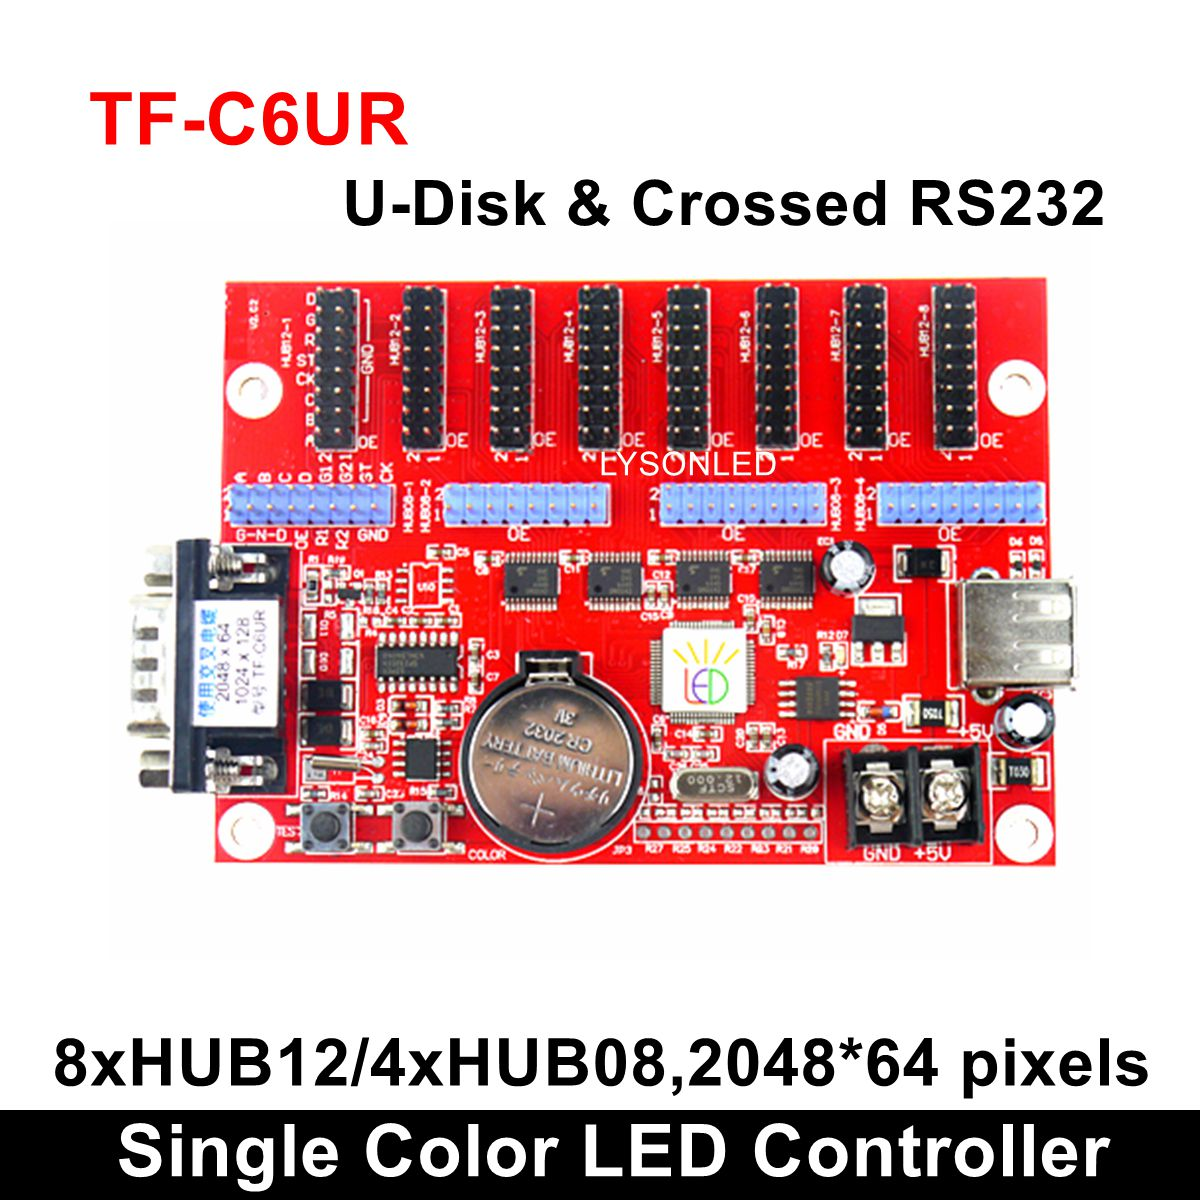 TF-C6UR Single Color Led Display Controller,P4.75 P 7.62 P10 Monochrome & Dual Color Led Display Card For Digital Message Board